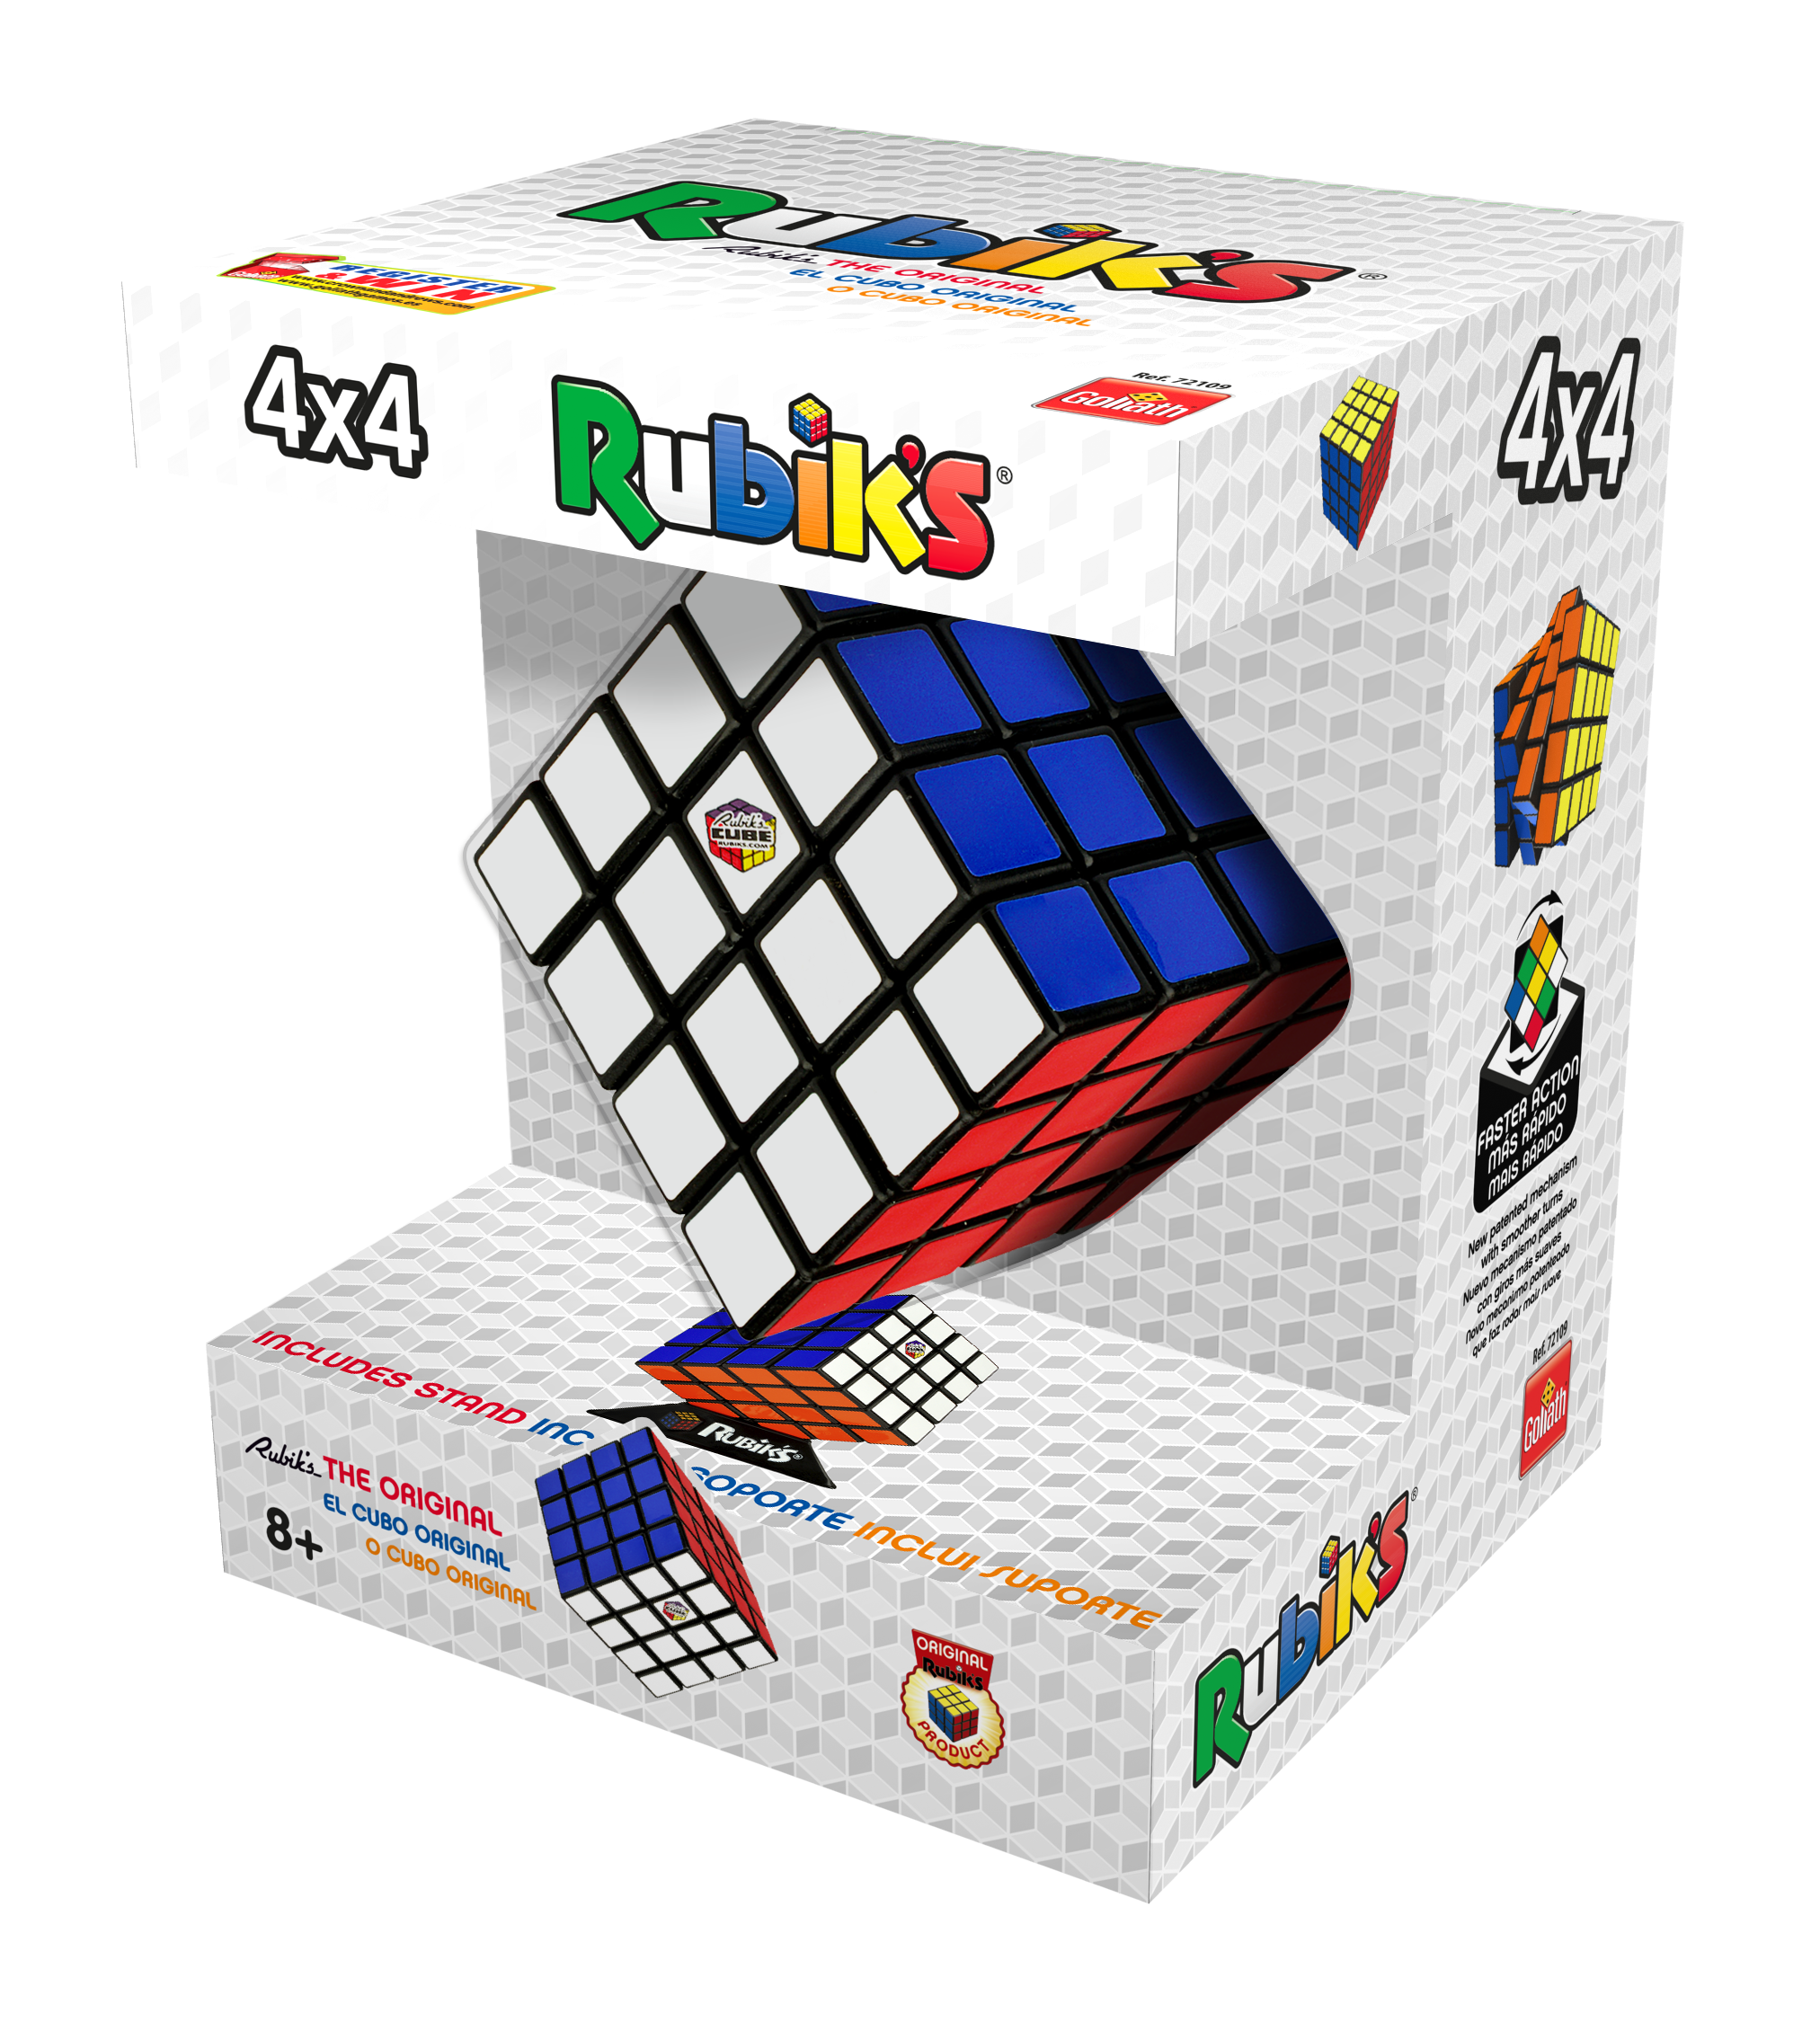 Rubik 39 s 4x4 goliath spain goliath spain for Rubik espana